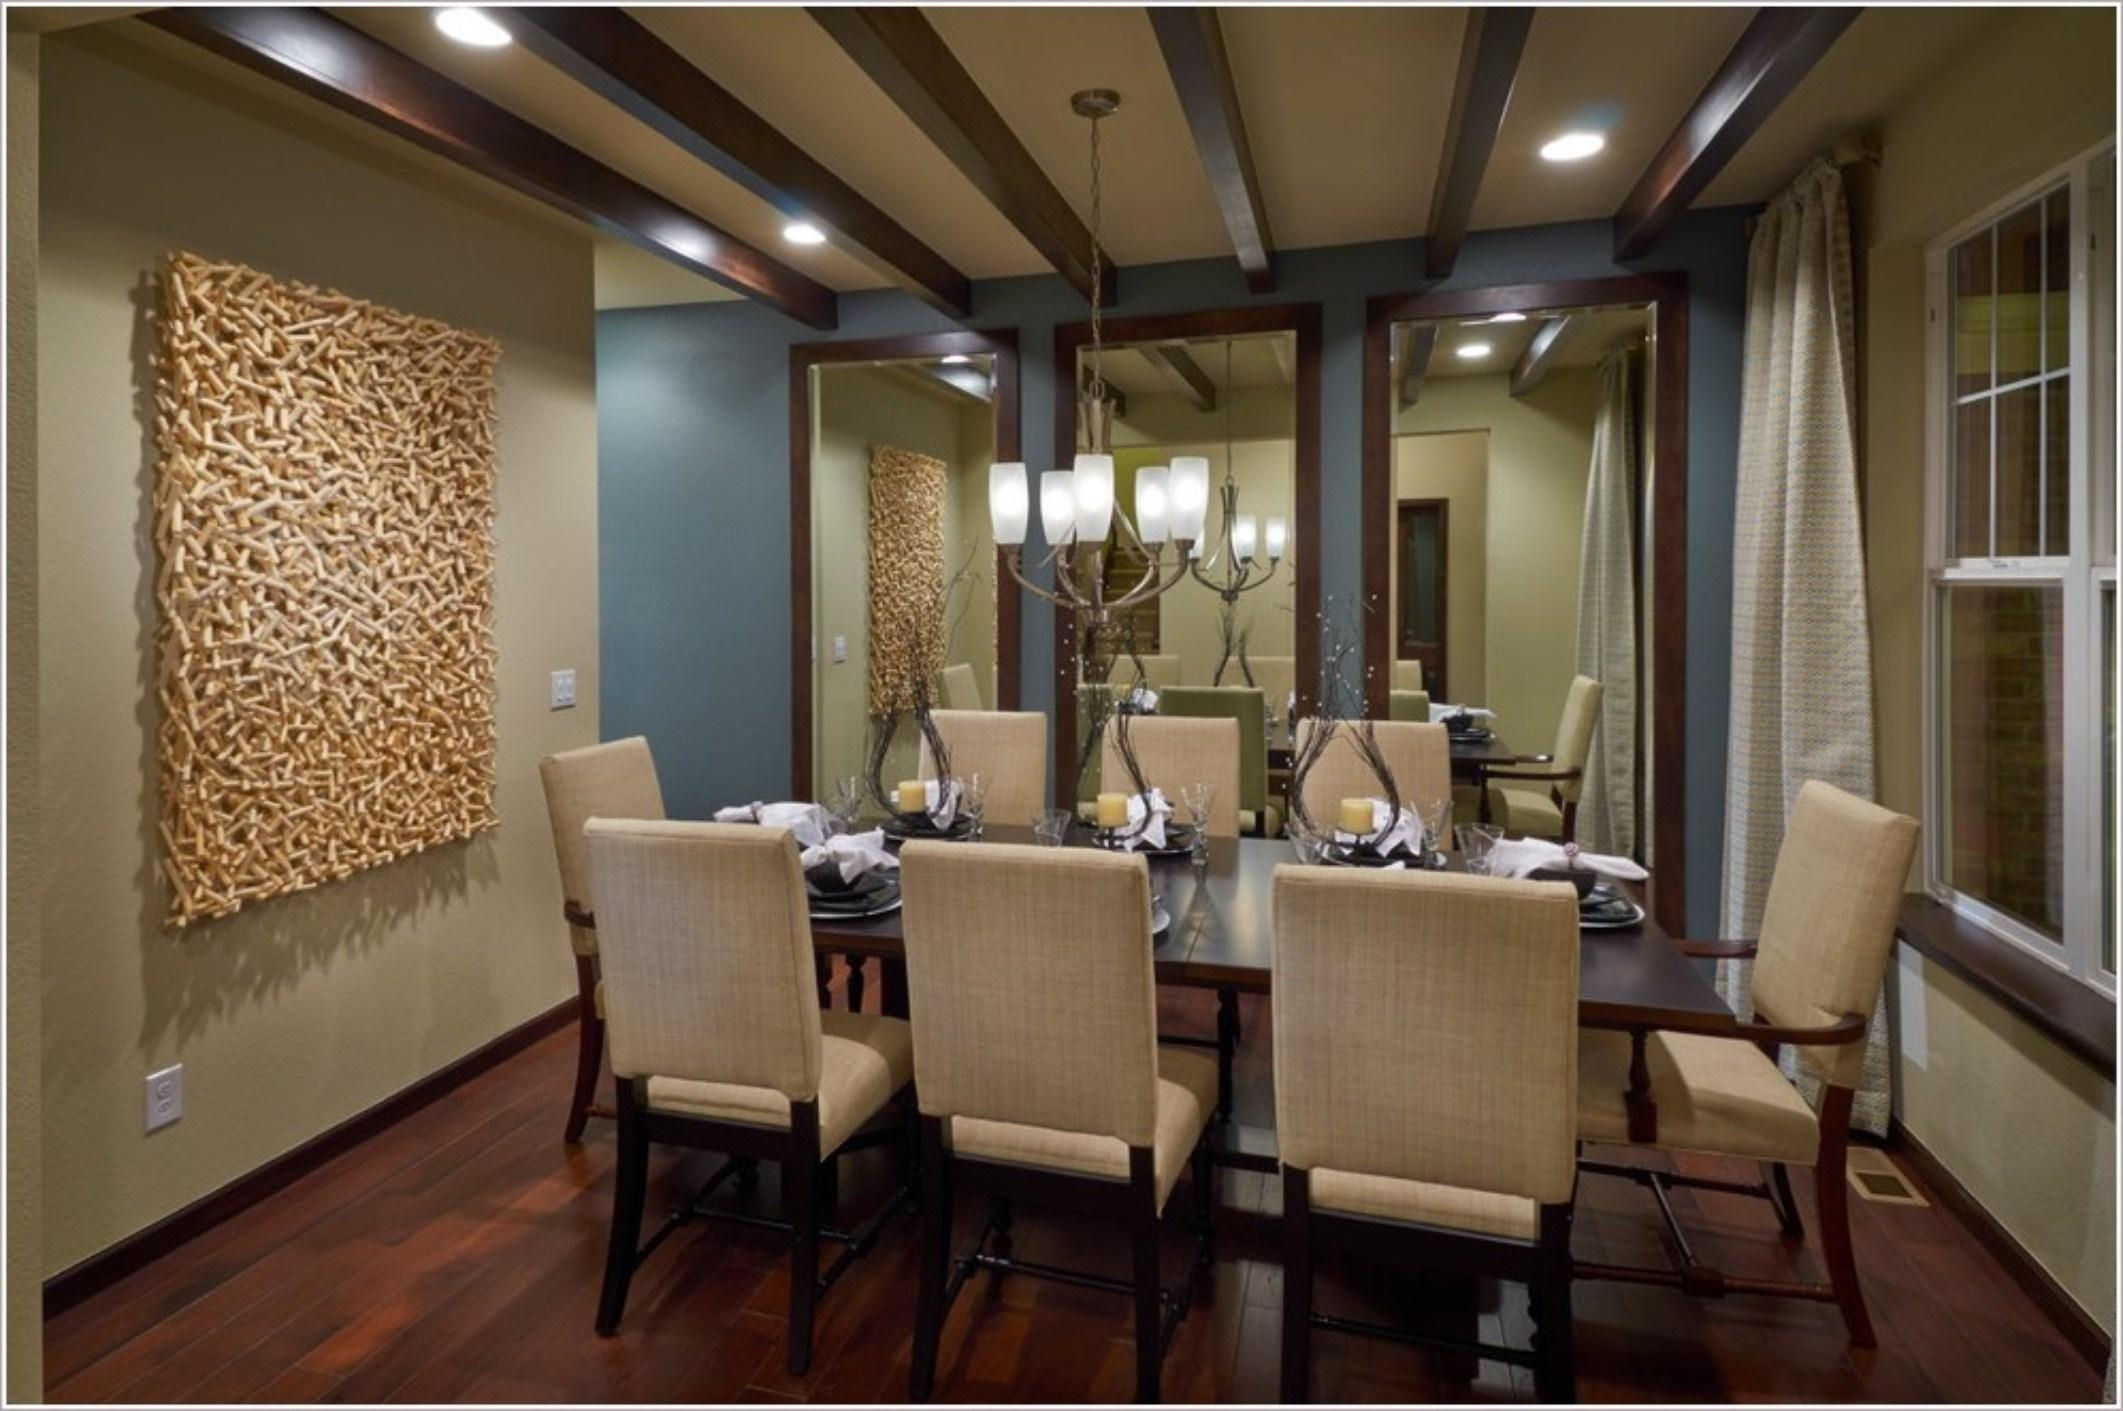 Formal Dining Room Drapes With Modern Chandeliers And Wall Regarding Formal Dining Room Wall Art (View 15 of 20)